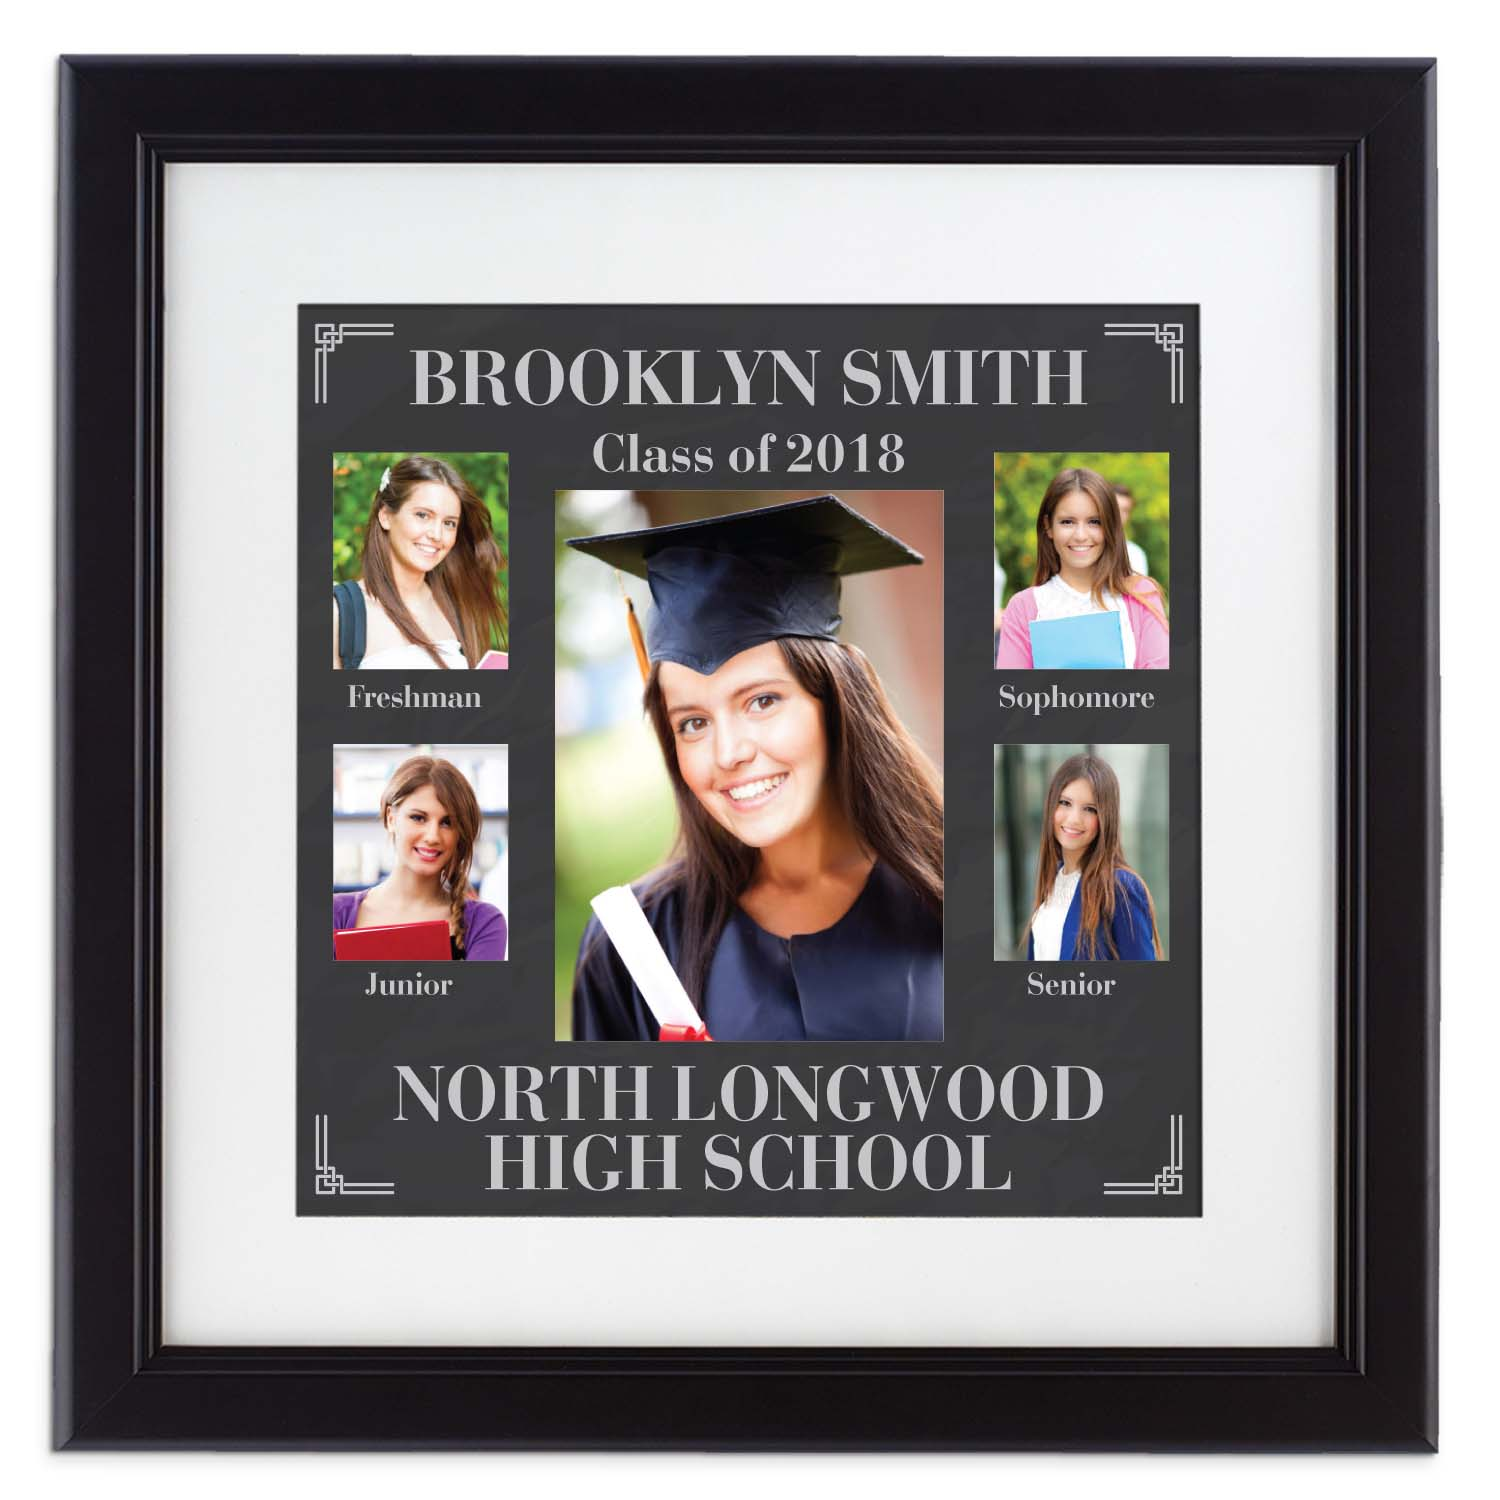 Personalized Picture-Perfect High School Graduation Photo Frame